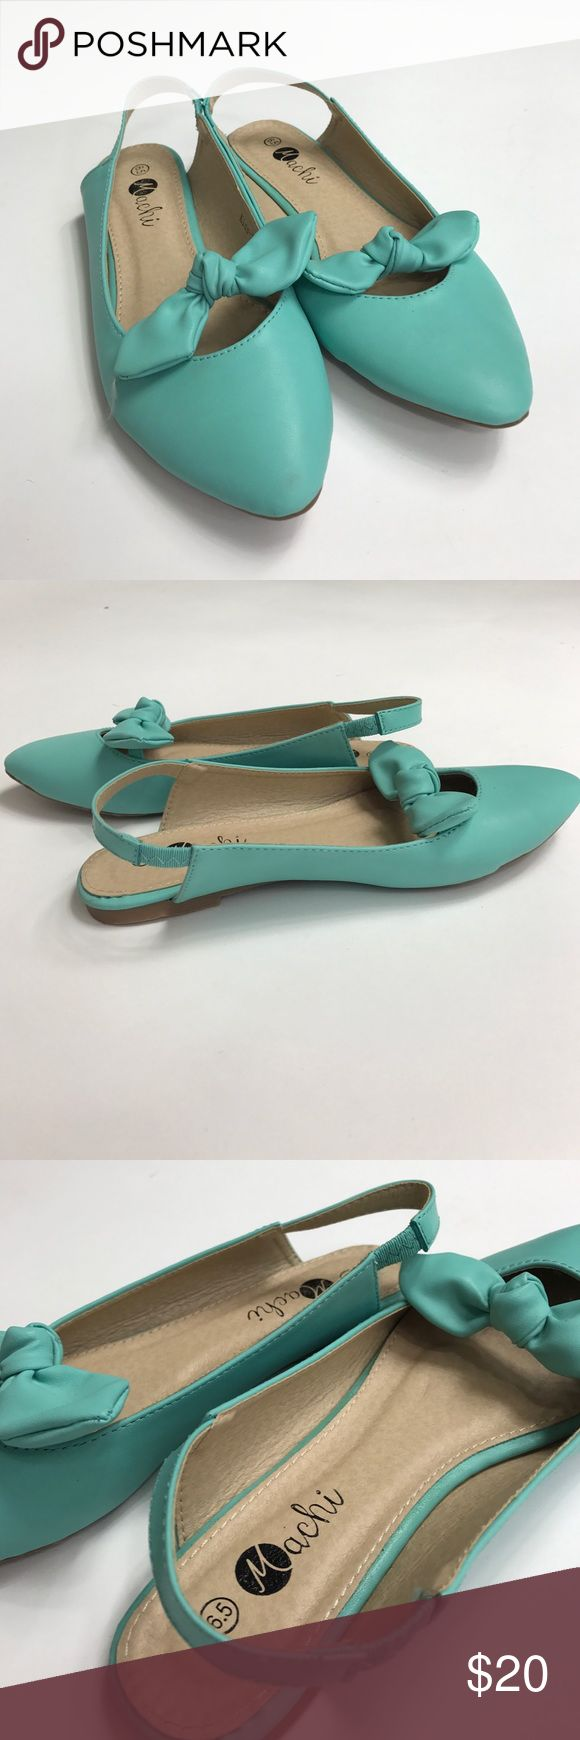 Teal Flats withBow Cute Teal flats with bow detail. Never worn. machi Shoes Flats & Loafers